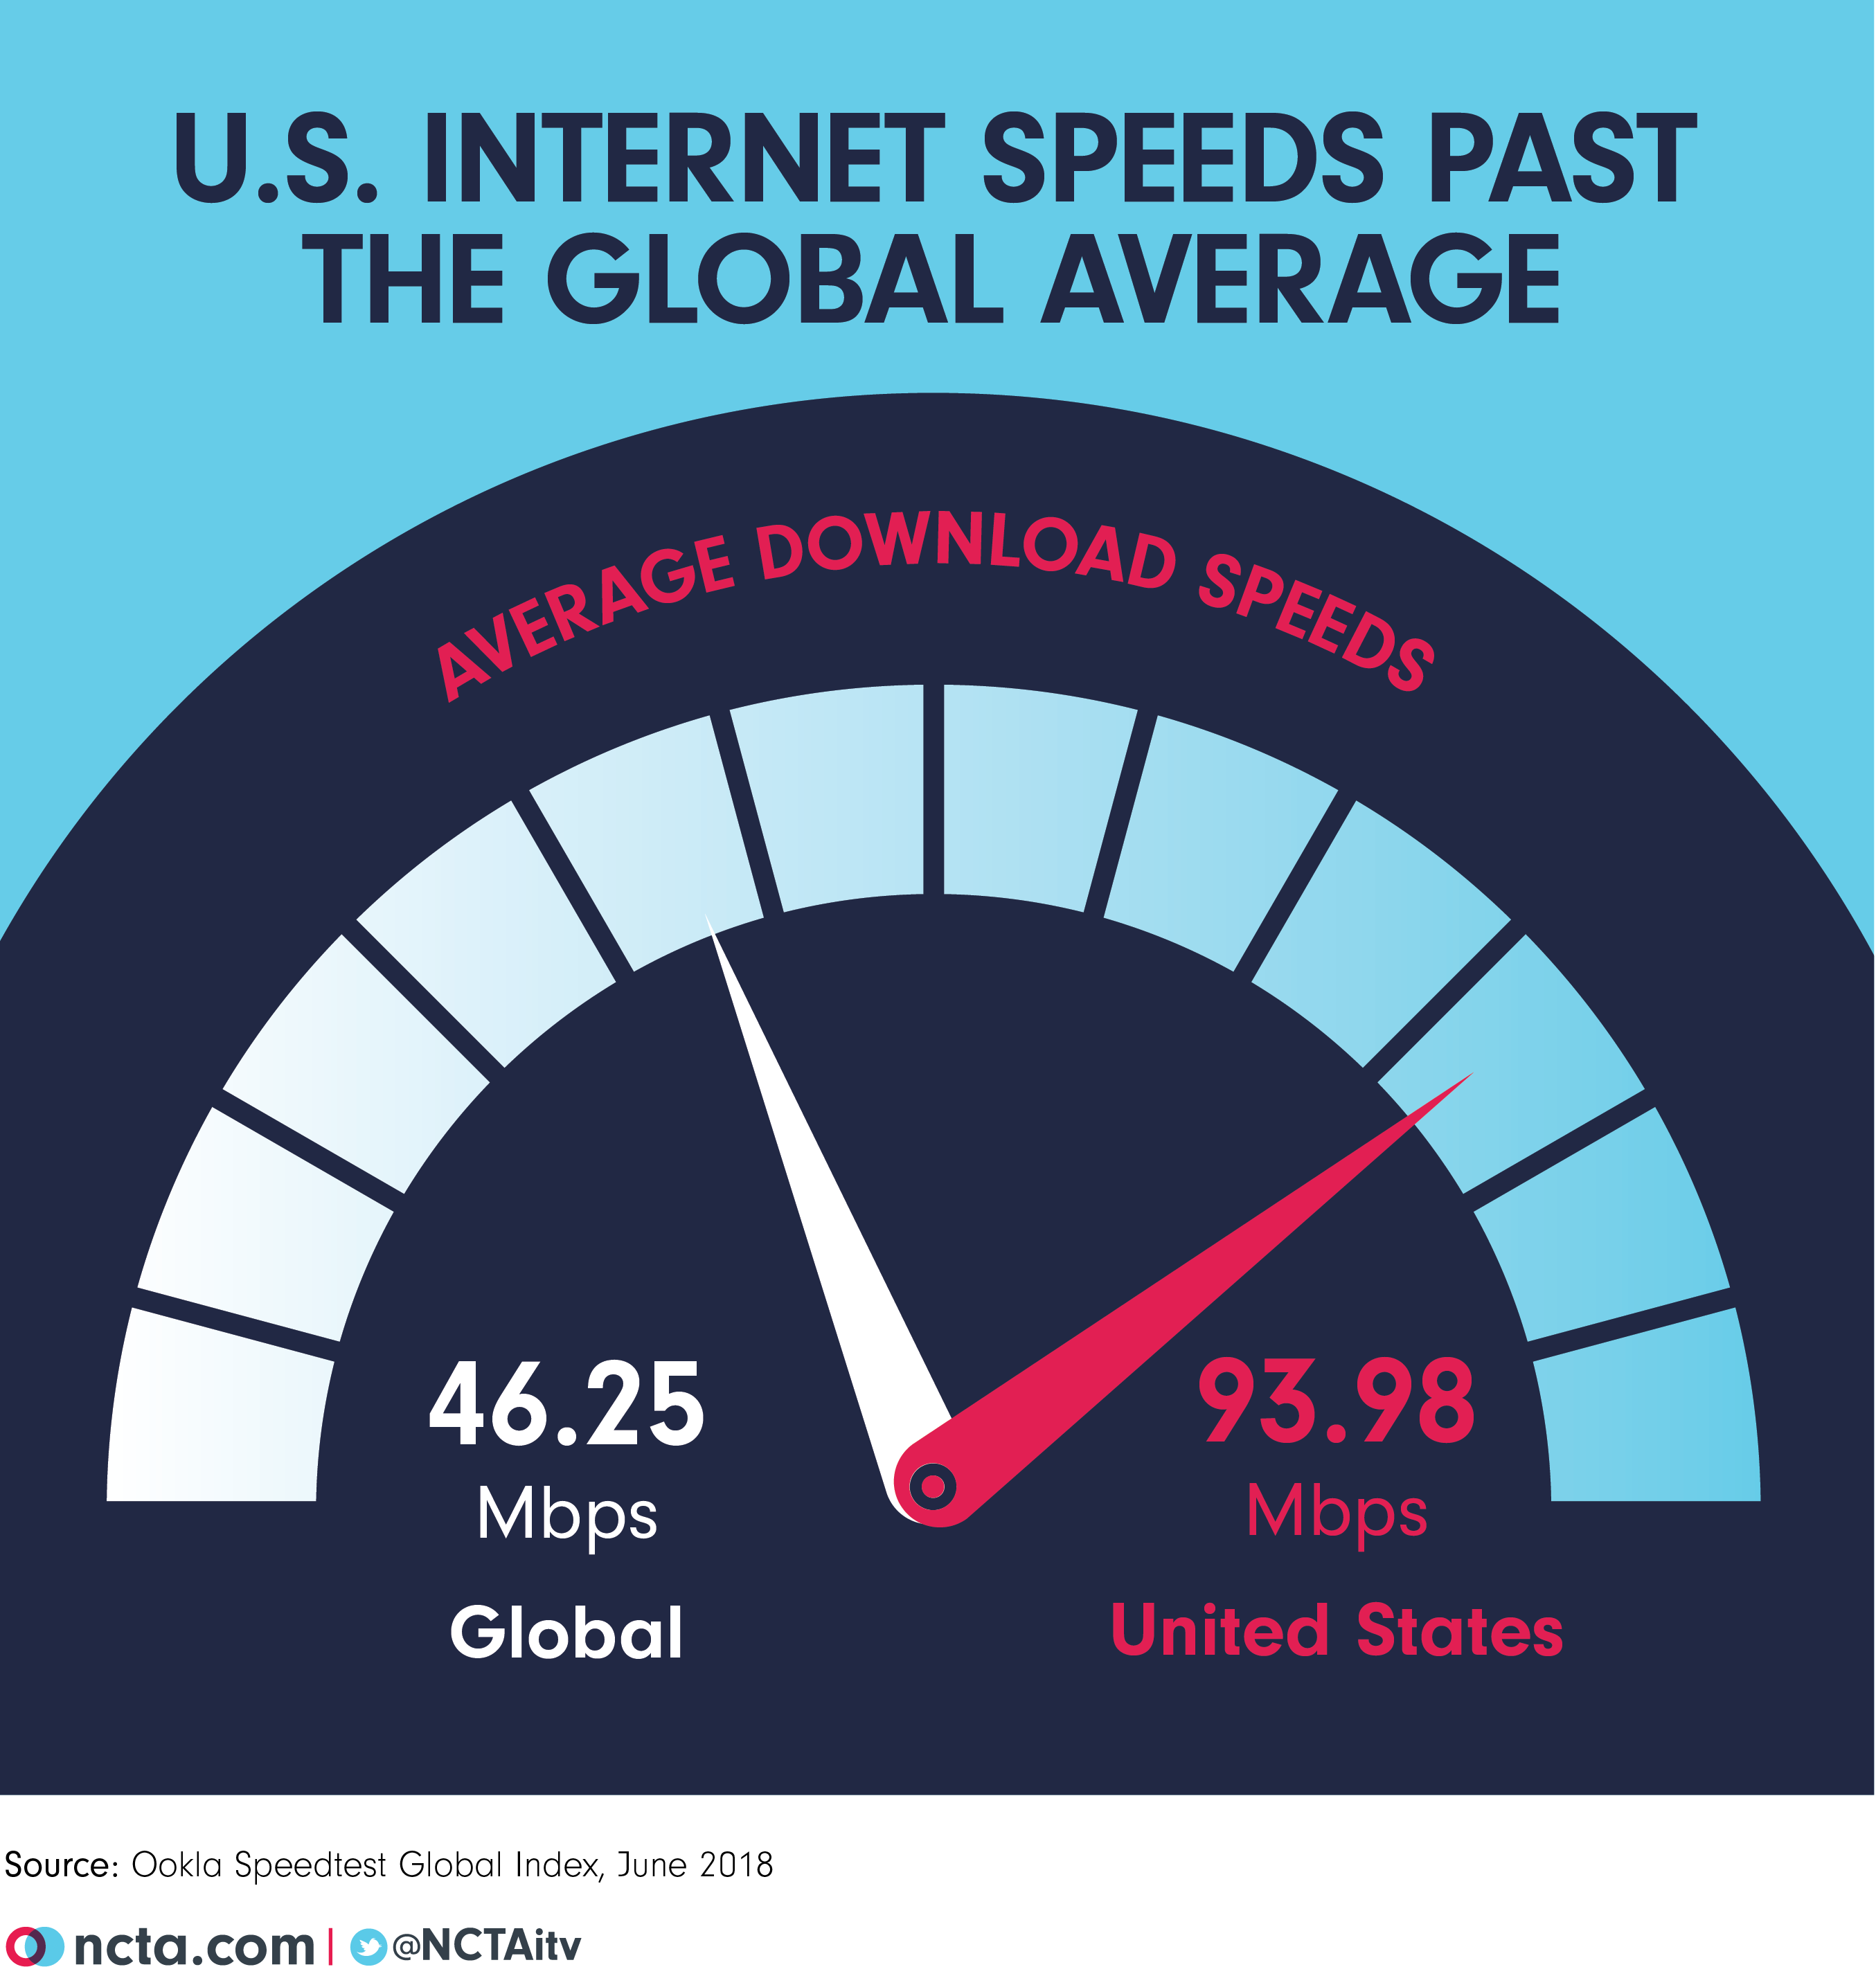 Average U.S. Internet Speeds More Than Double Global Average